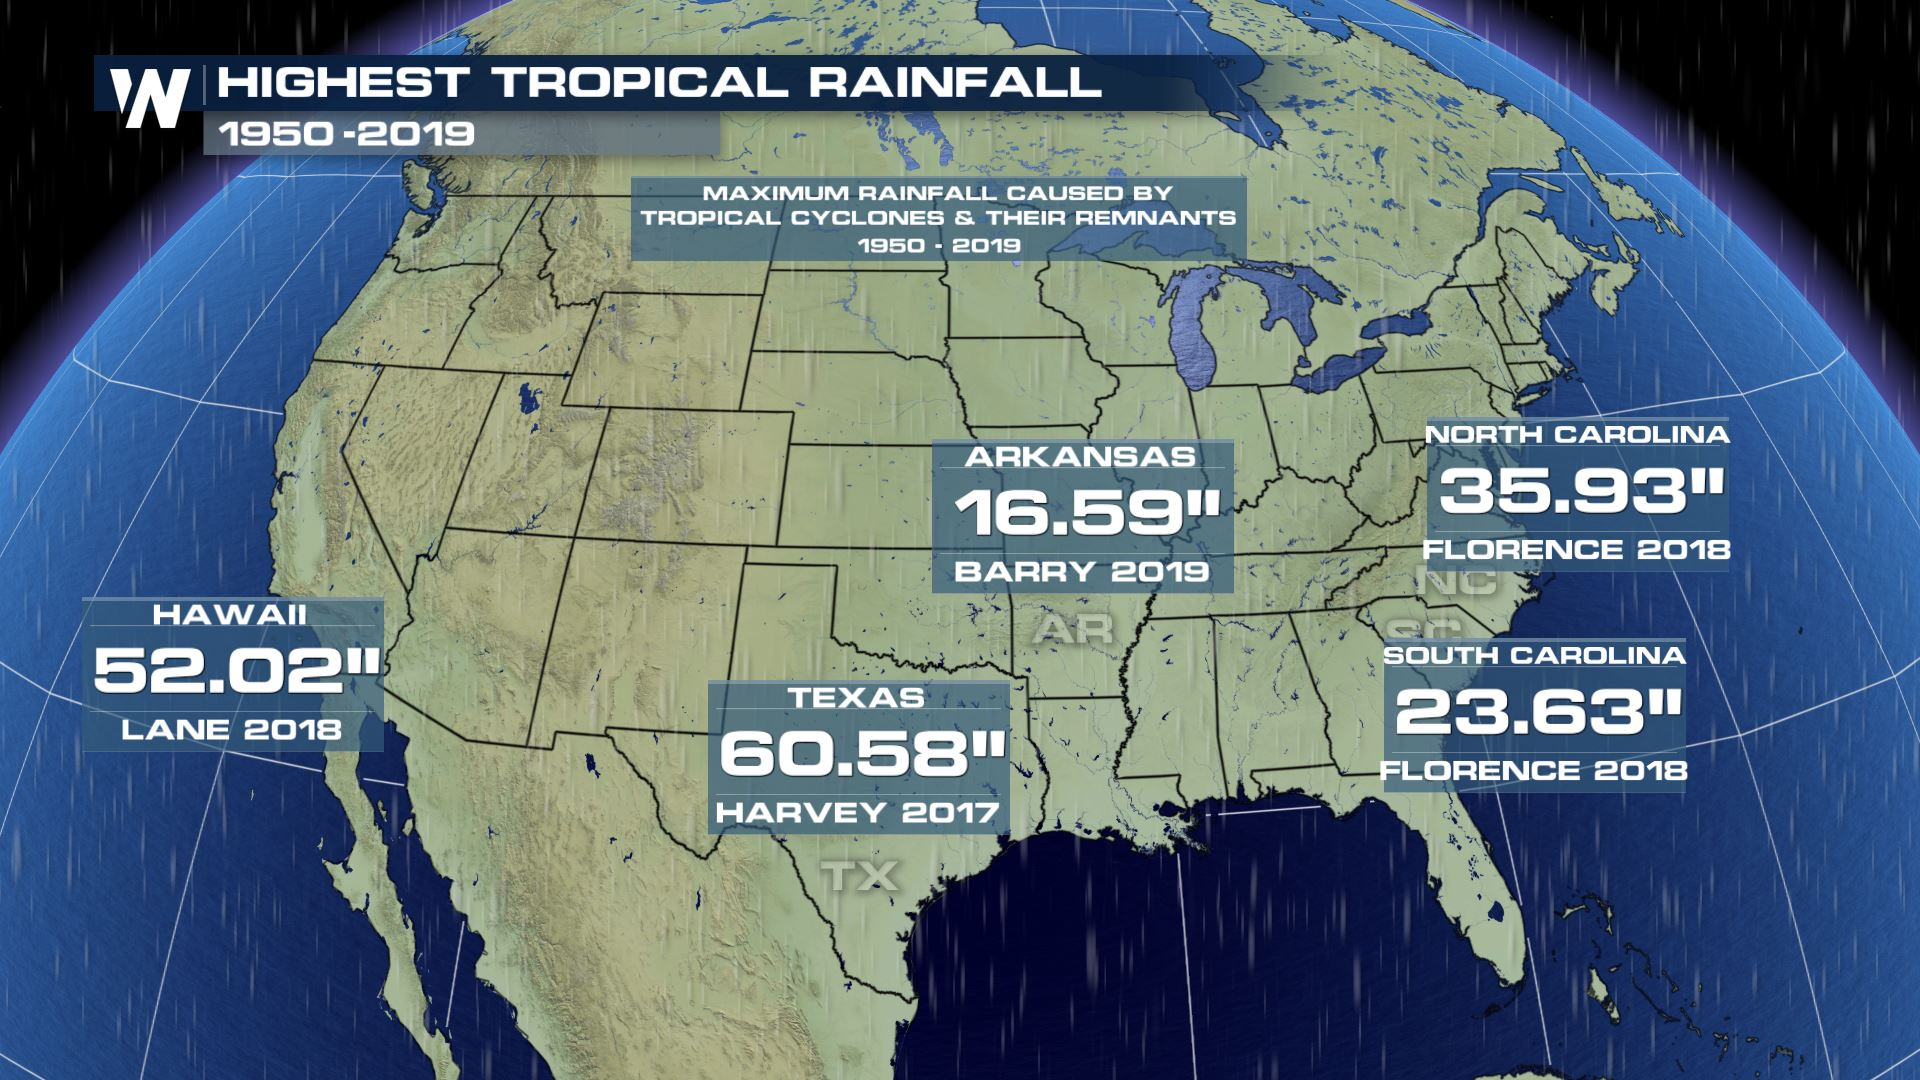 Arkansas: 5th State Since 2017 to Get Record Tropical Rain ... on usa map, ohio map, arkansas county map printable, alabama state map, arkansas ozarks map, arkansas statehood, arkansas physical map, arkansas road map, cities in arkansas map, arkansas resource map, united states state map, arkansas flag, arkansas river, missouri map, arkansas bordering states, delware state map, arkansas map with cities, arizona state map, auburn university map, okla state map,